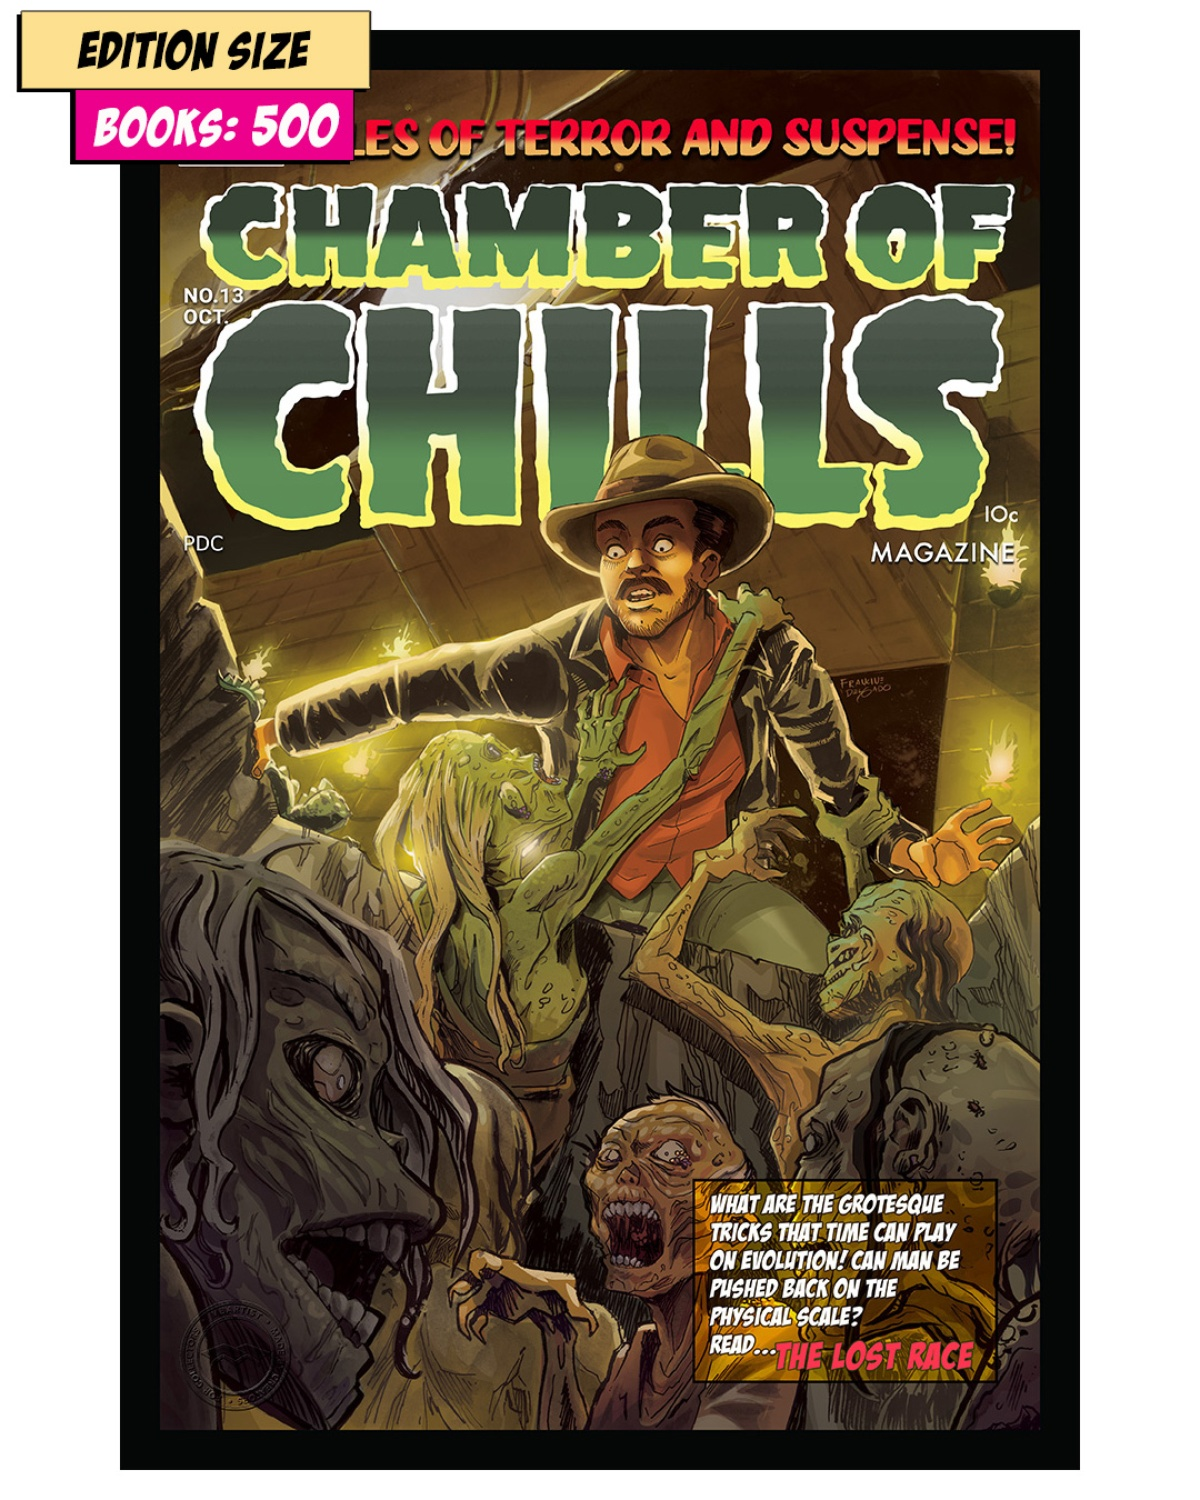 Book - CHAMBER OF CHILLS #13 : REPRINT